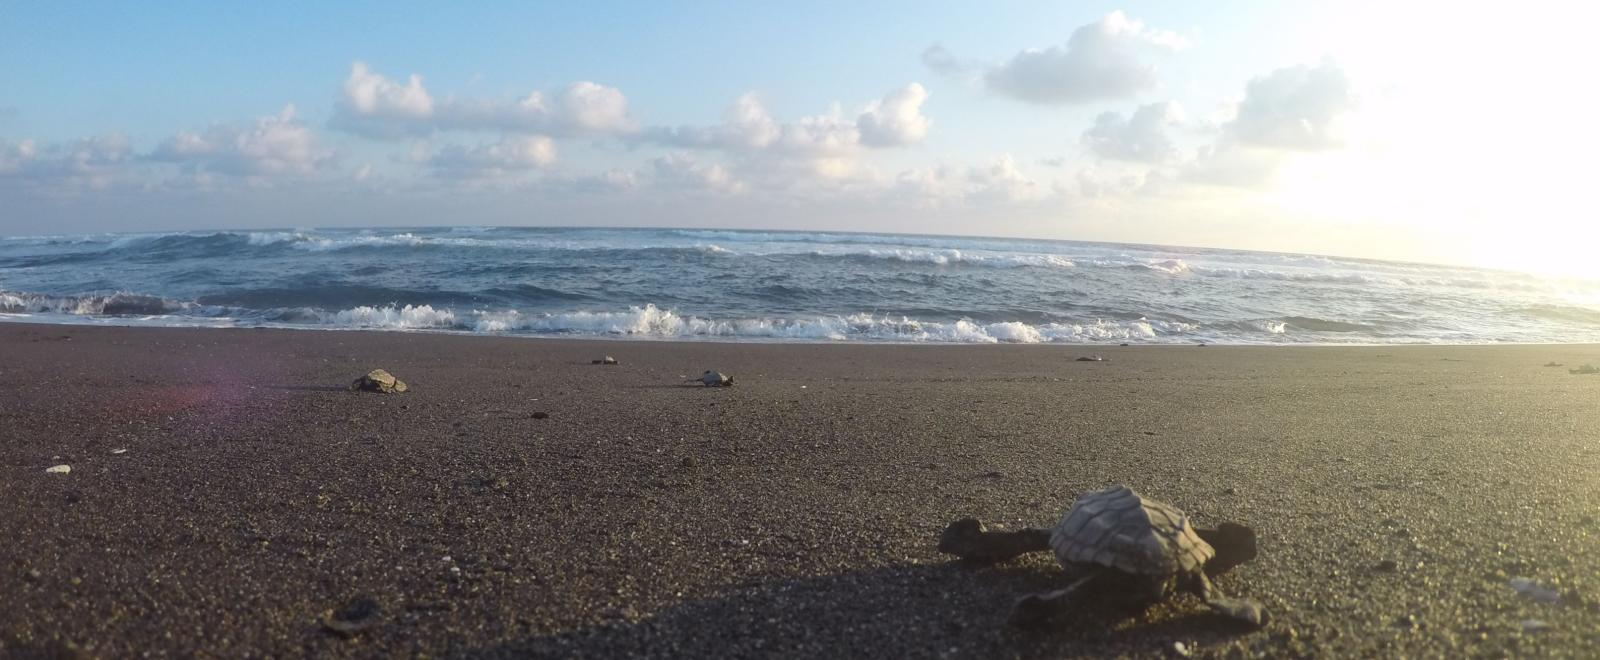 A newly hatched turtle crawls across the sand to reach the ocean in Mexico.